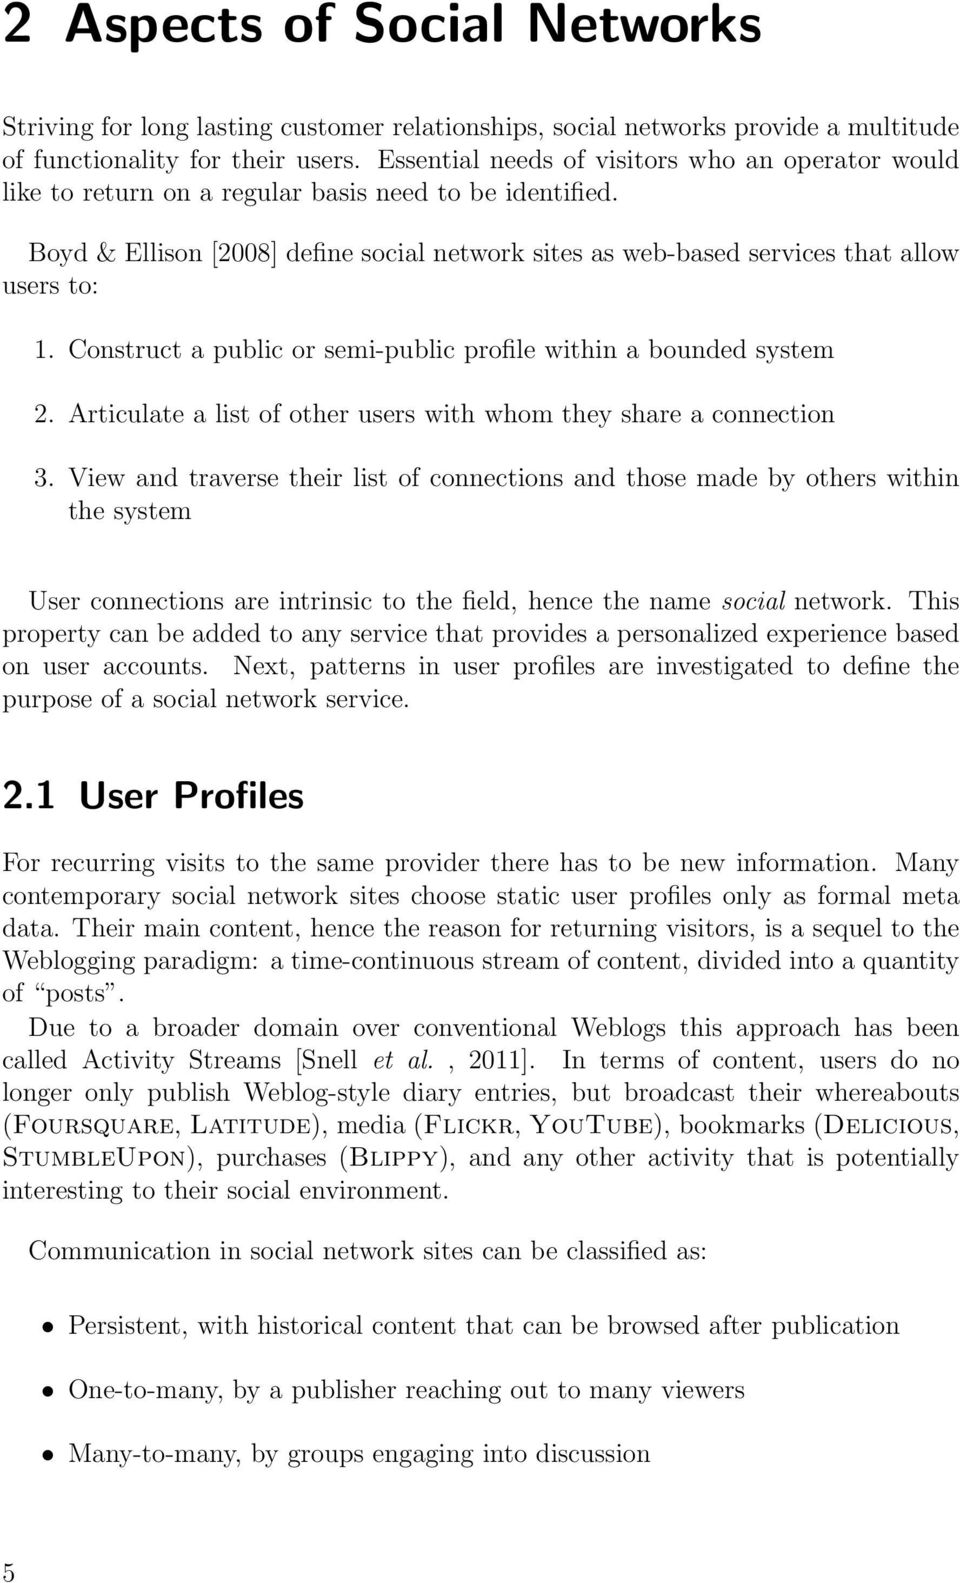 Boyd & Ellison [2008] define social network sites as web-based services that allow users to: 1. Construct a public or semi-public profile within a bounded system 2.